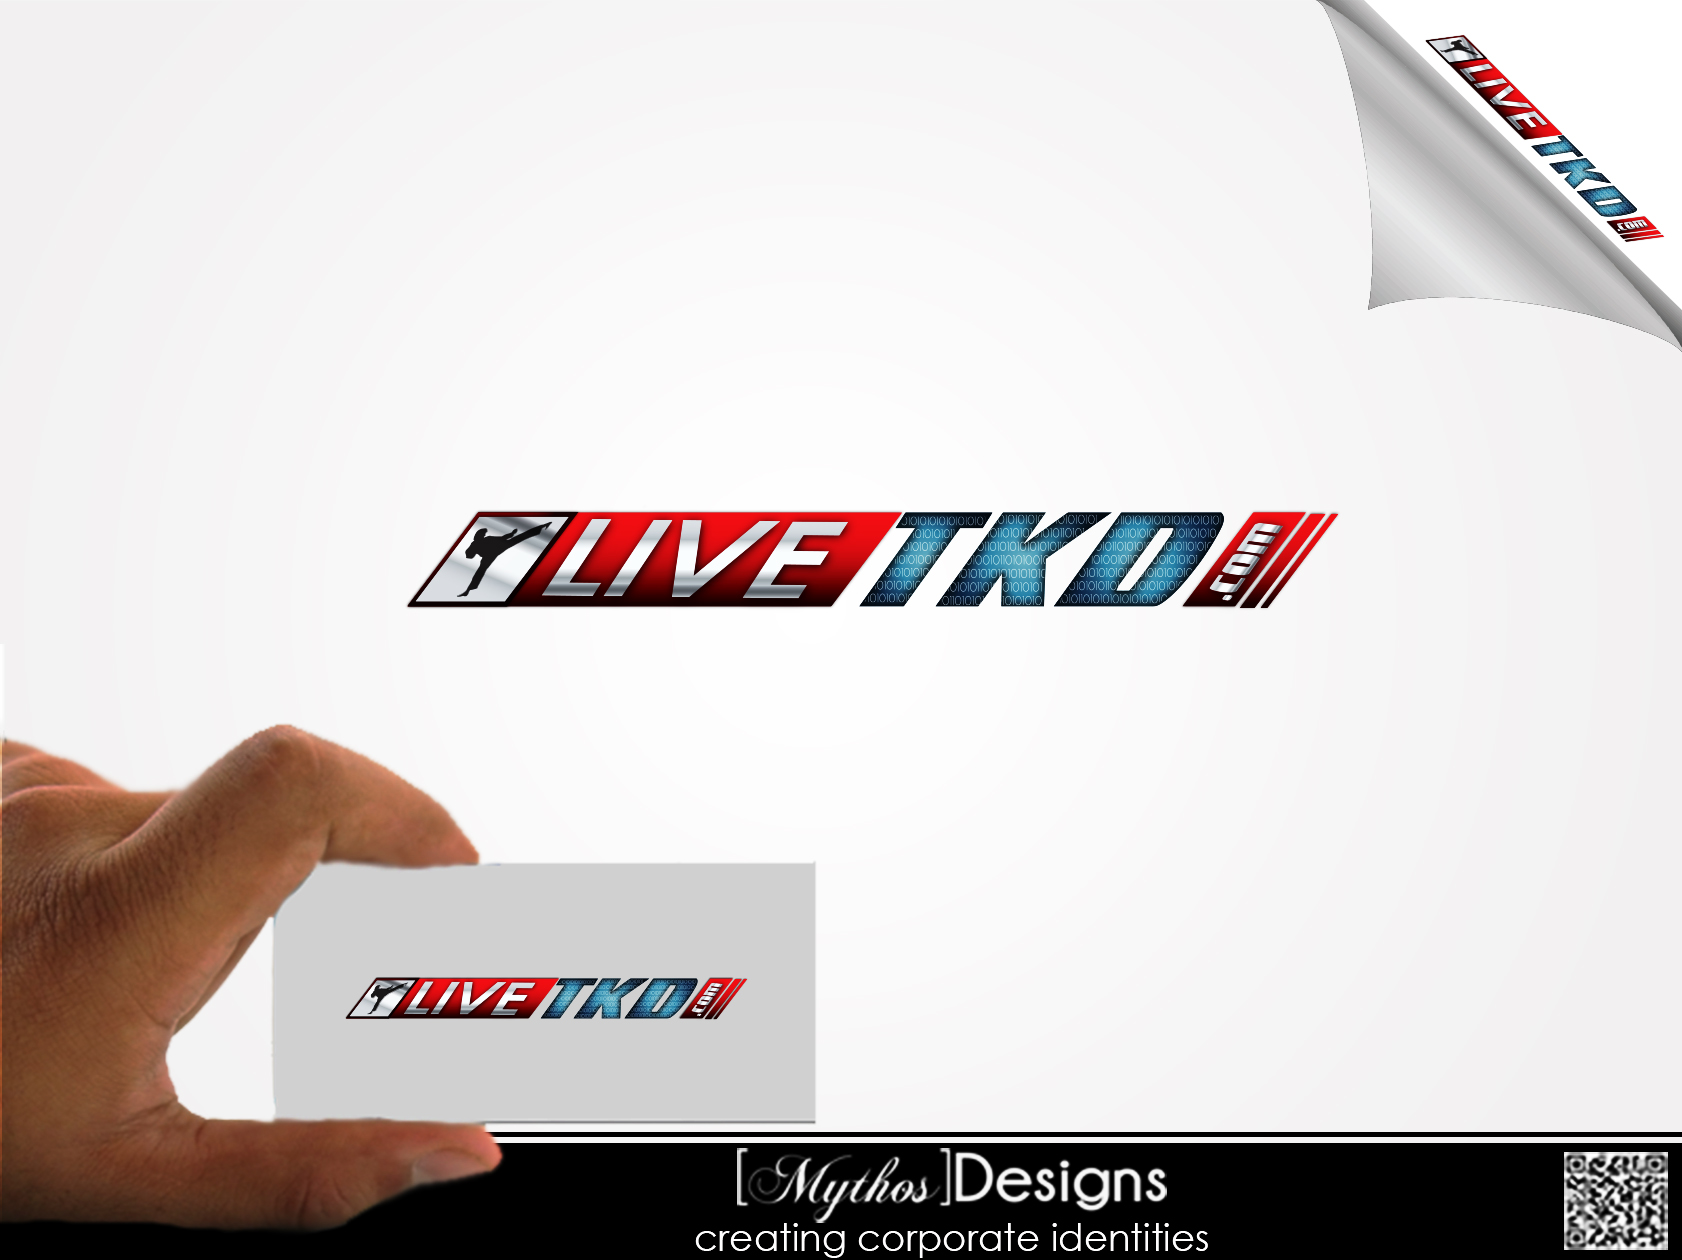 Logo Design by Mythos Designs - Entry No. 209 in the Logo Design Contest New Logo Design for LiveTKD.com.